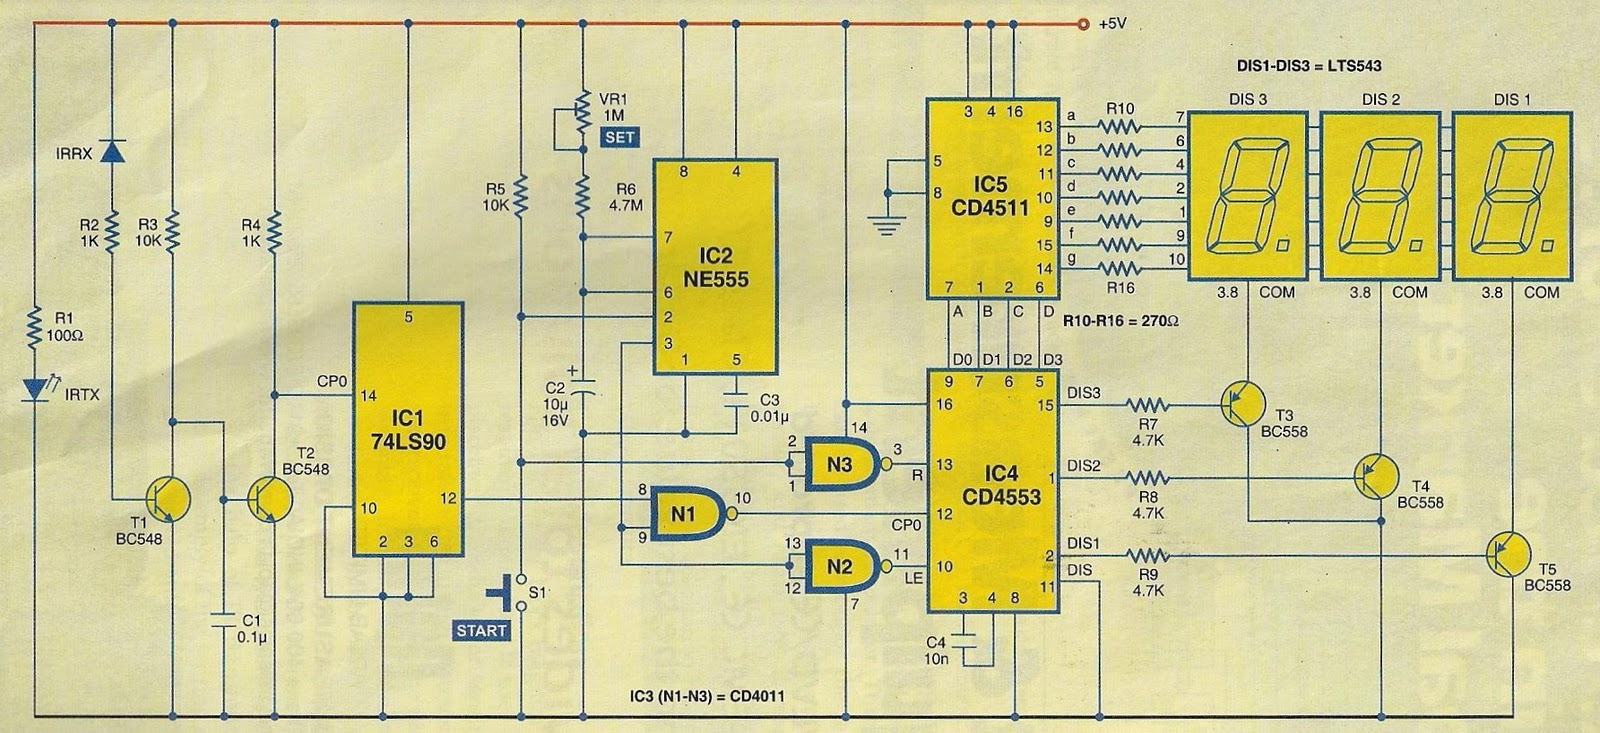 Digital Respiration Rate Meter Basic Infrared Transmitter Circuit Schematic Diagram The Ir Led Irtx Connected In Series With Resistor R1 Transmits Signals Which Are Received By Receiver Irrx